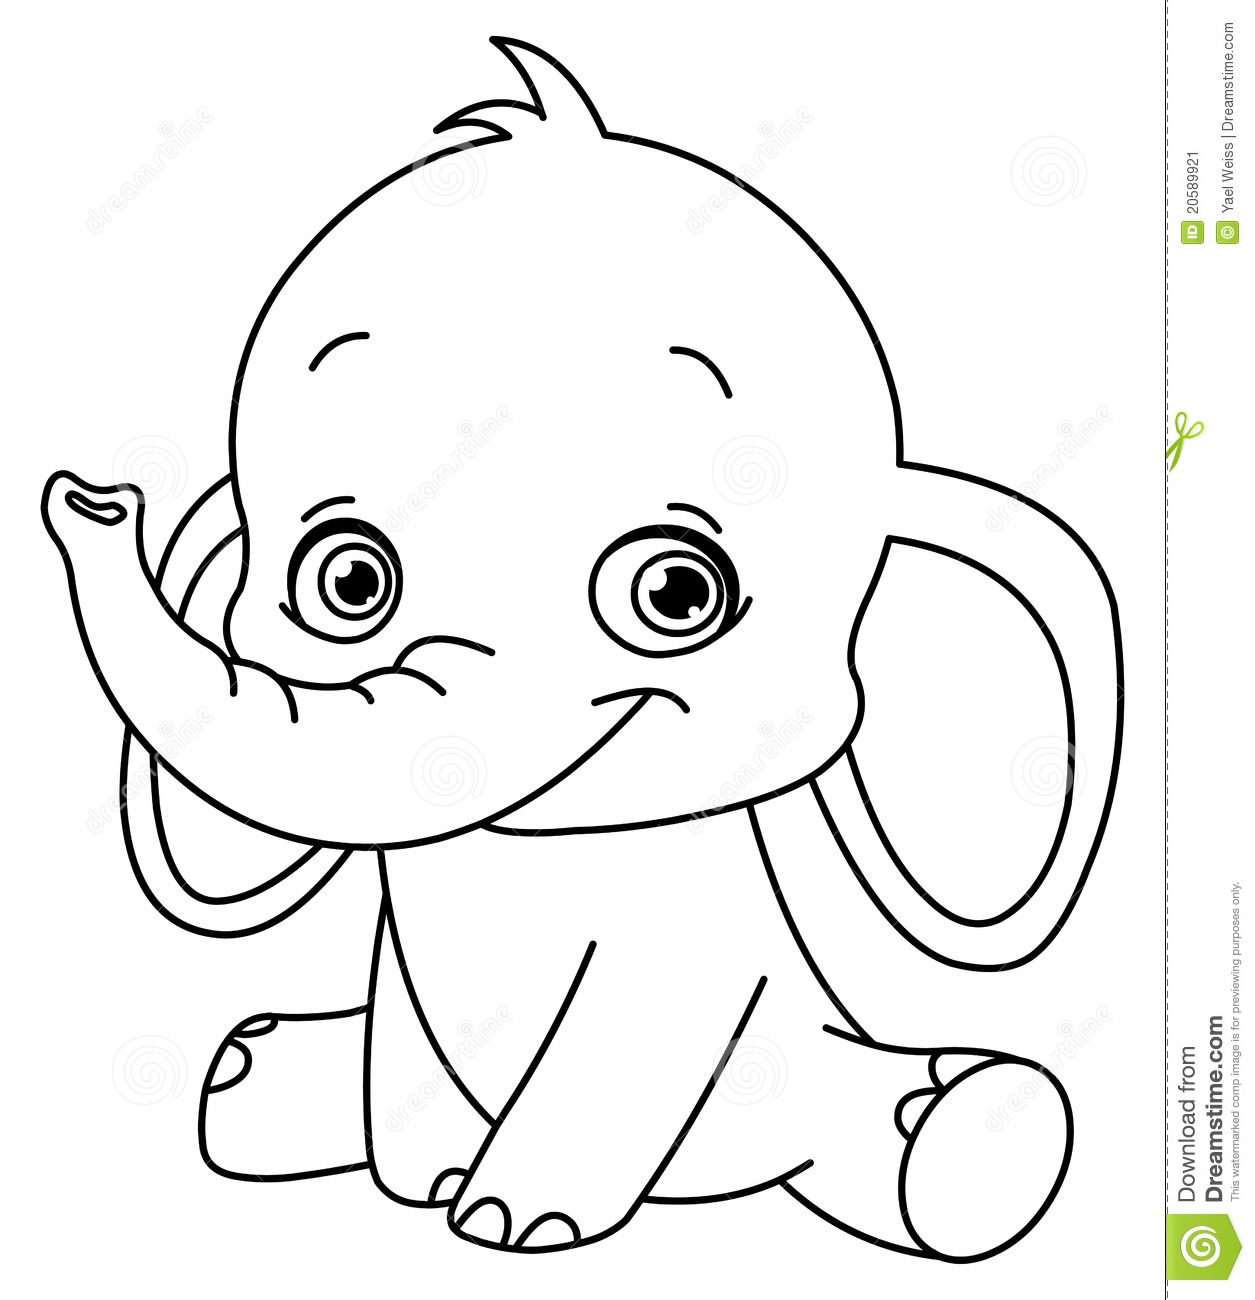 free coloring pages of elephant - photo#33